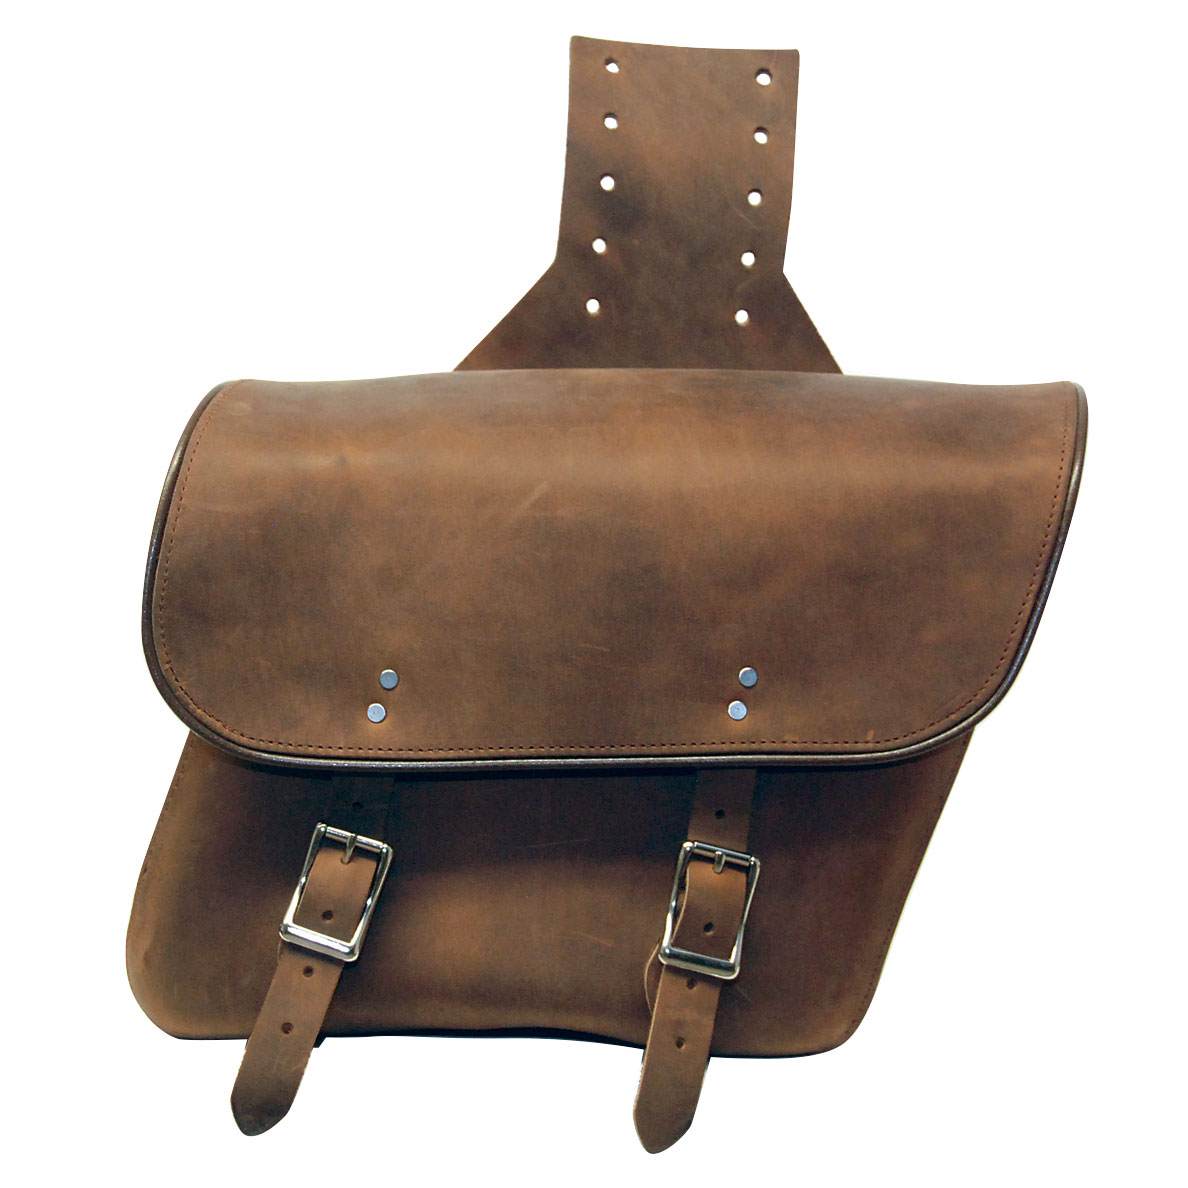 Leatherworks, Inc. Distressed Brown Throwover Saddlebags